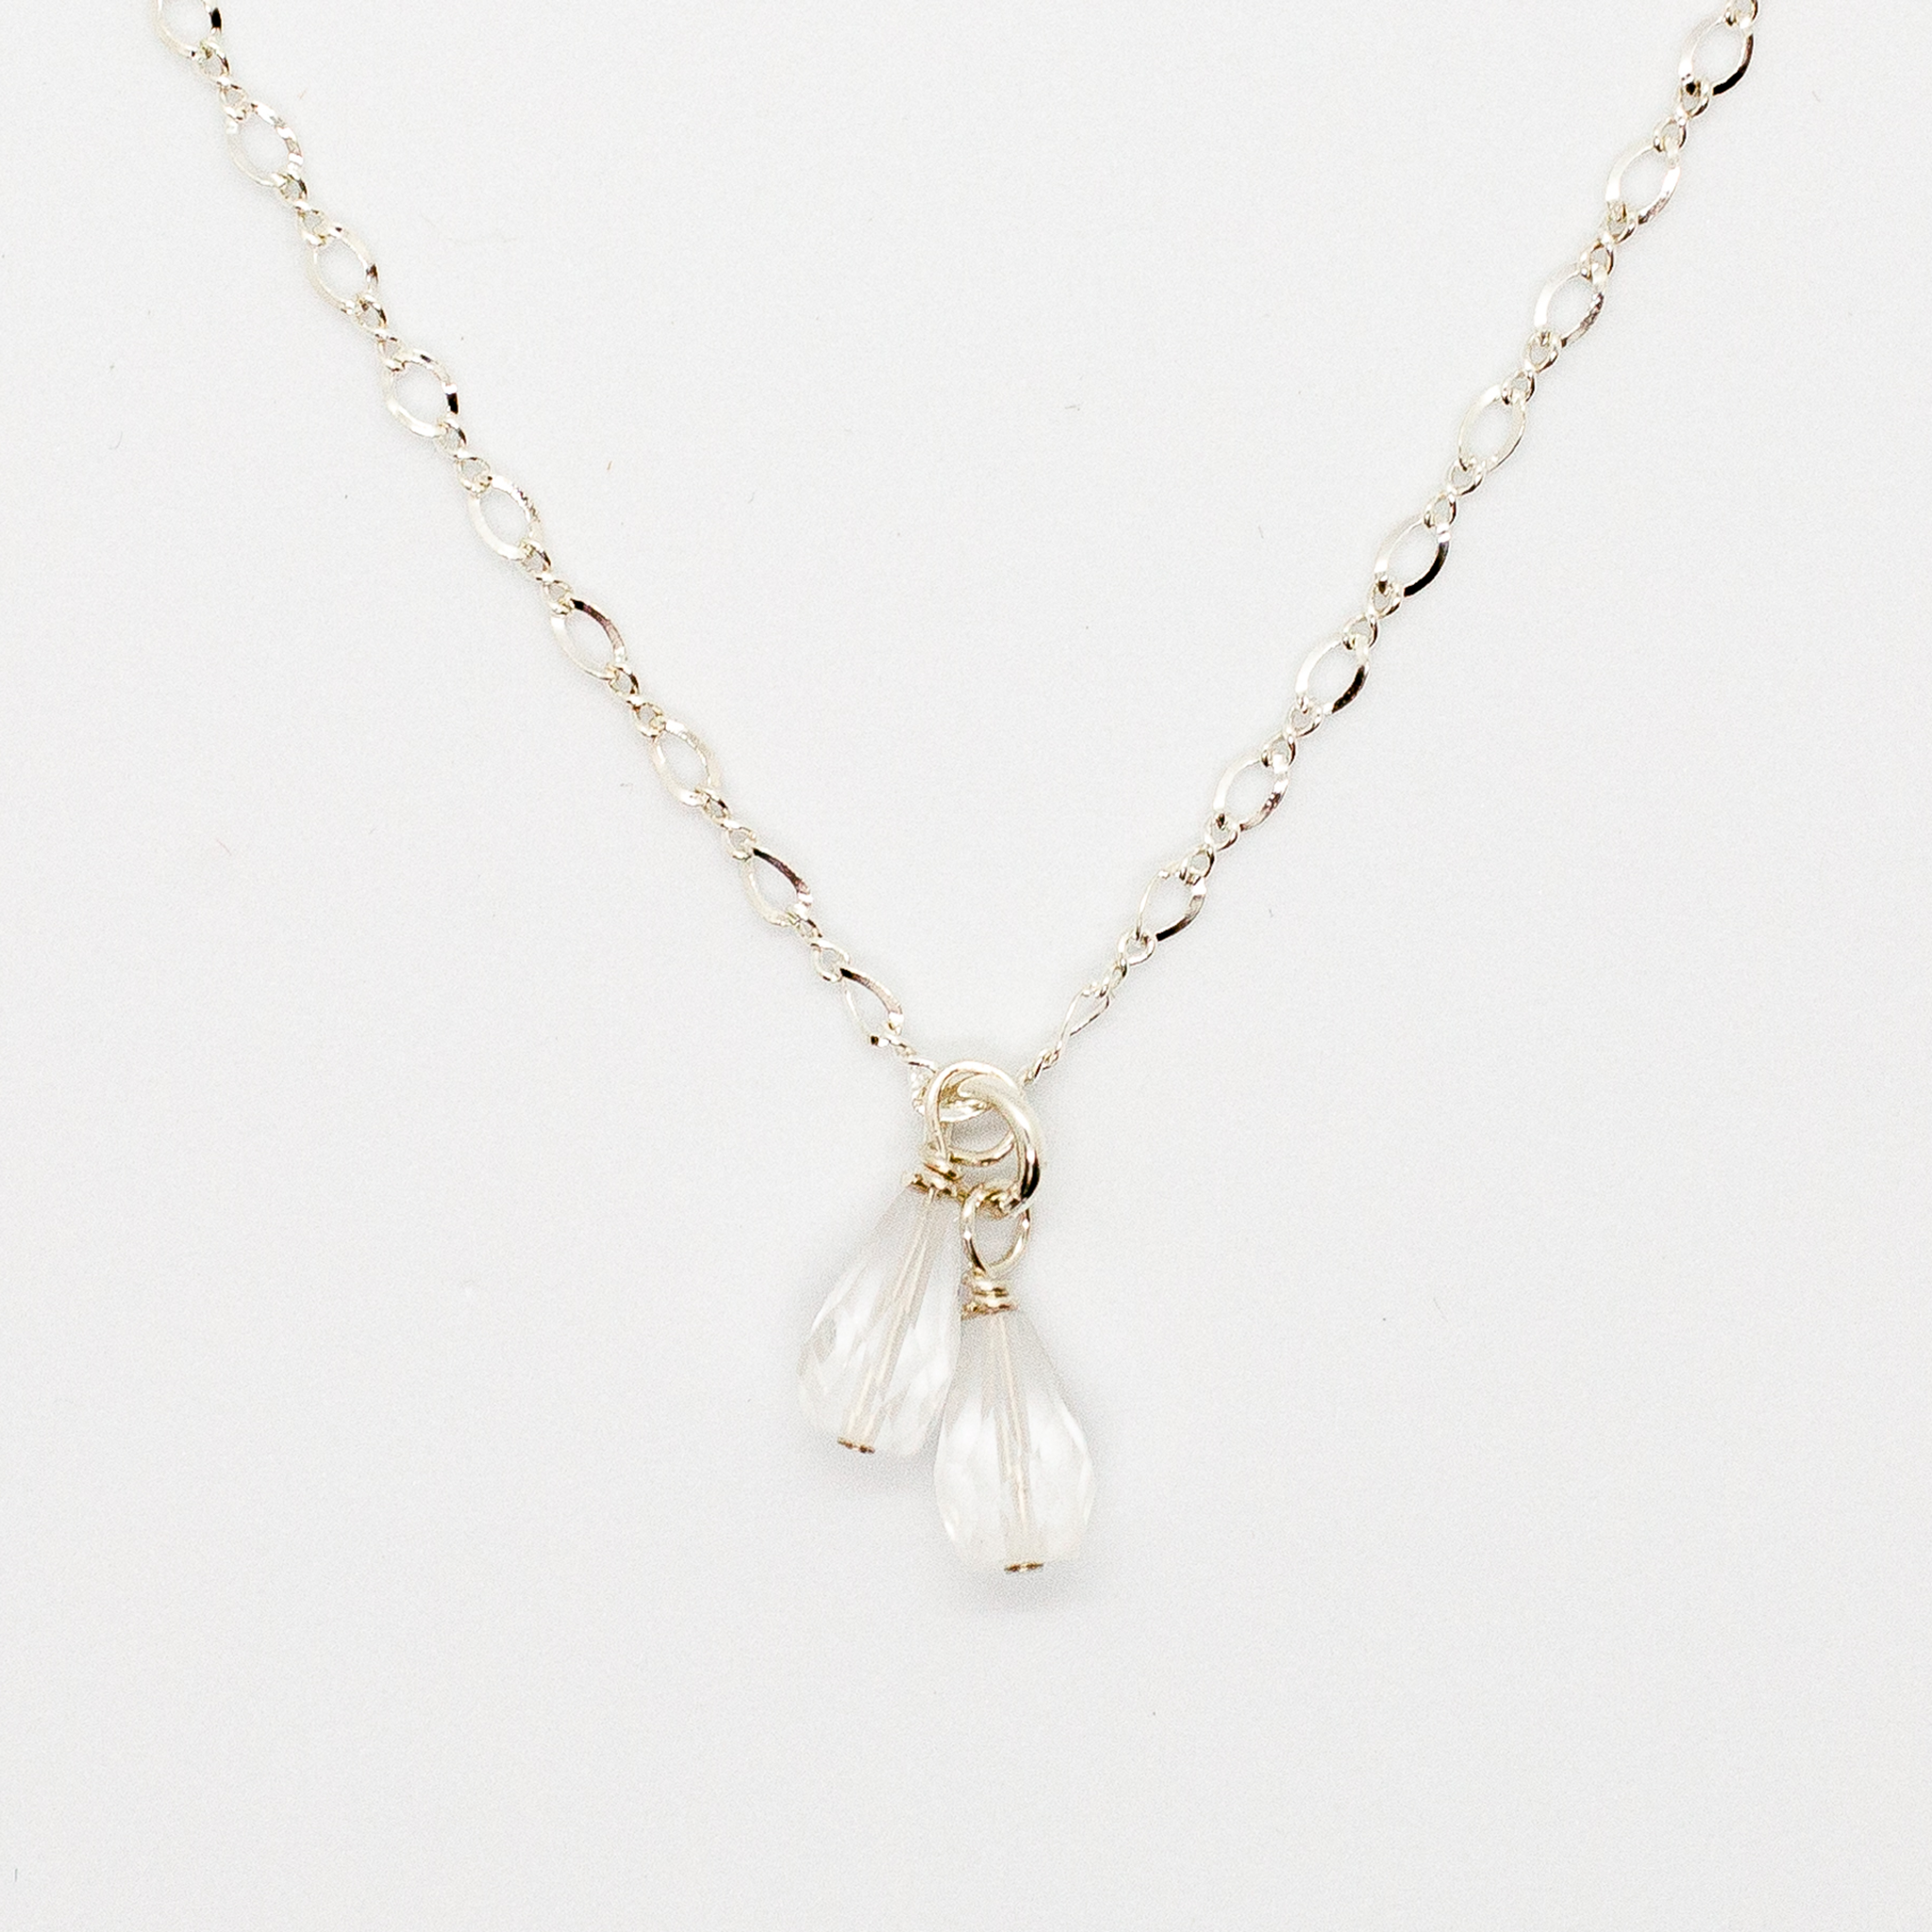 Delicate Choker Necklace with Double Teardrop Shaped Quartz Crystal Drop in Sterling Silver